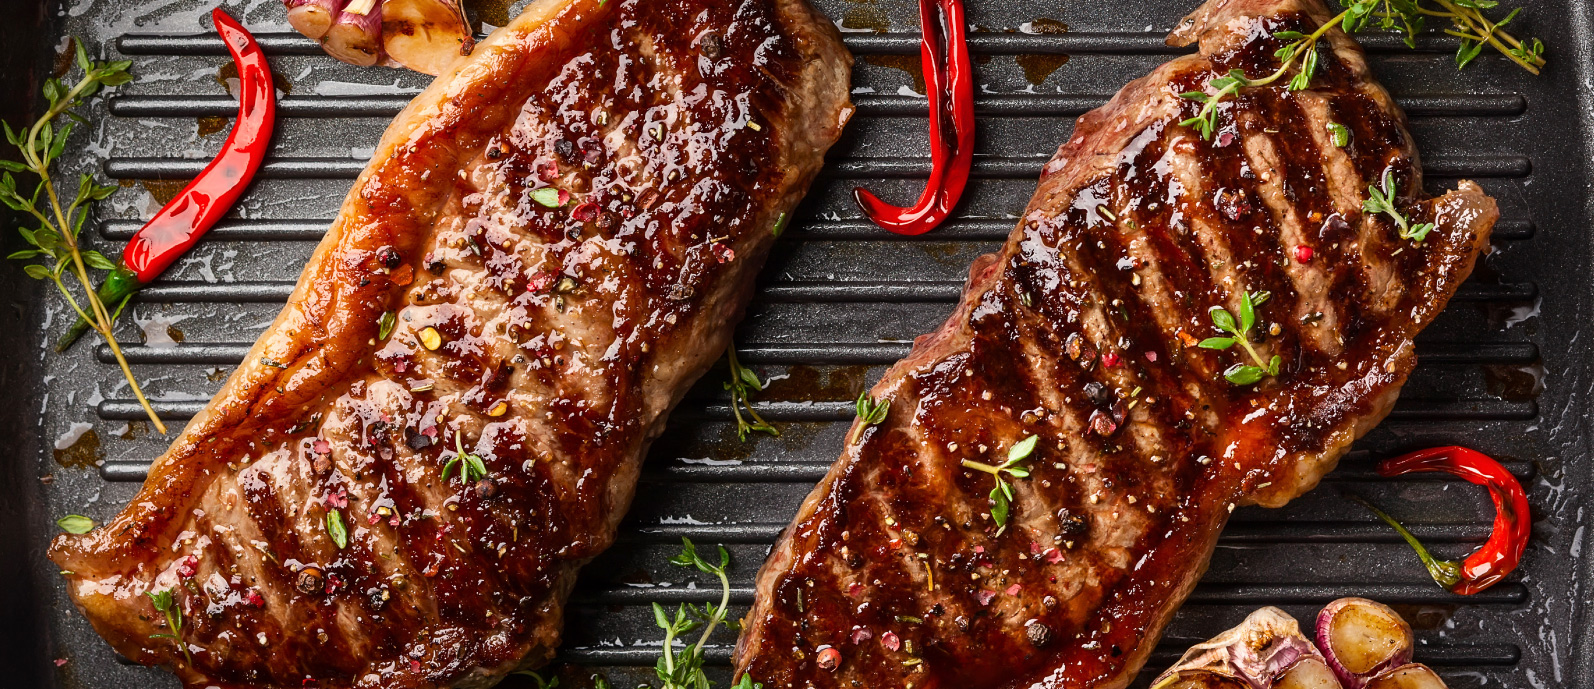 4 FREEGRASS-FED STRIP STEAKS (a $79.99 value) with orders of $125+